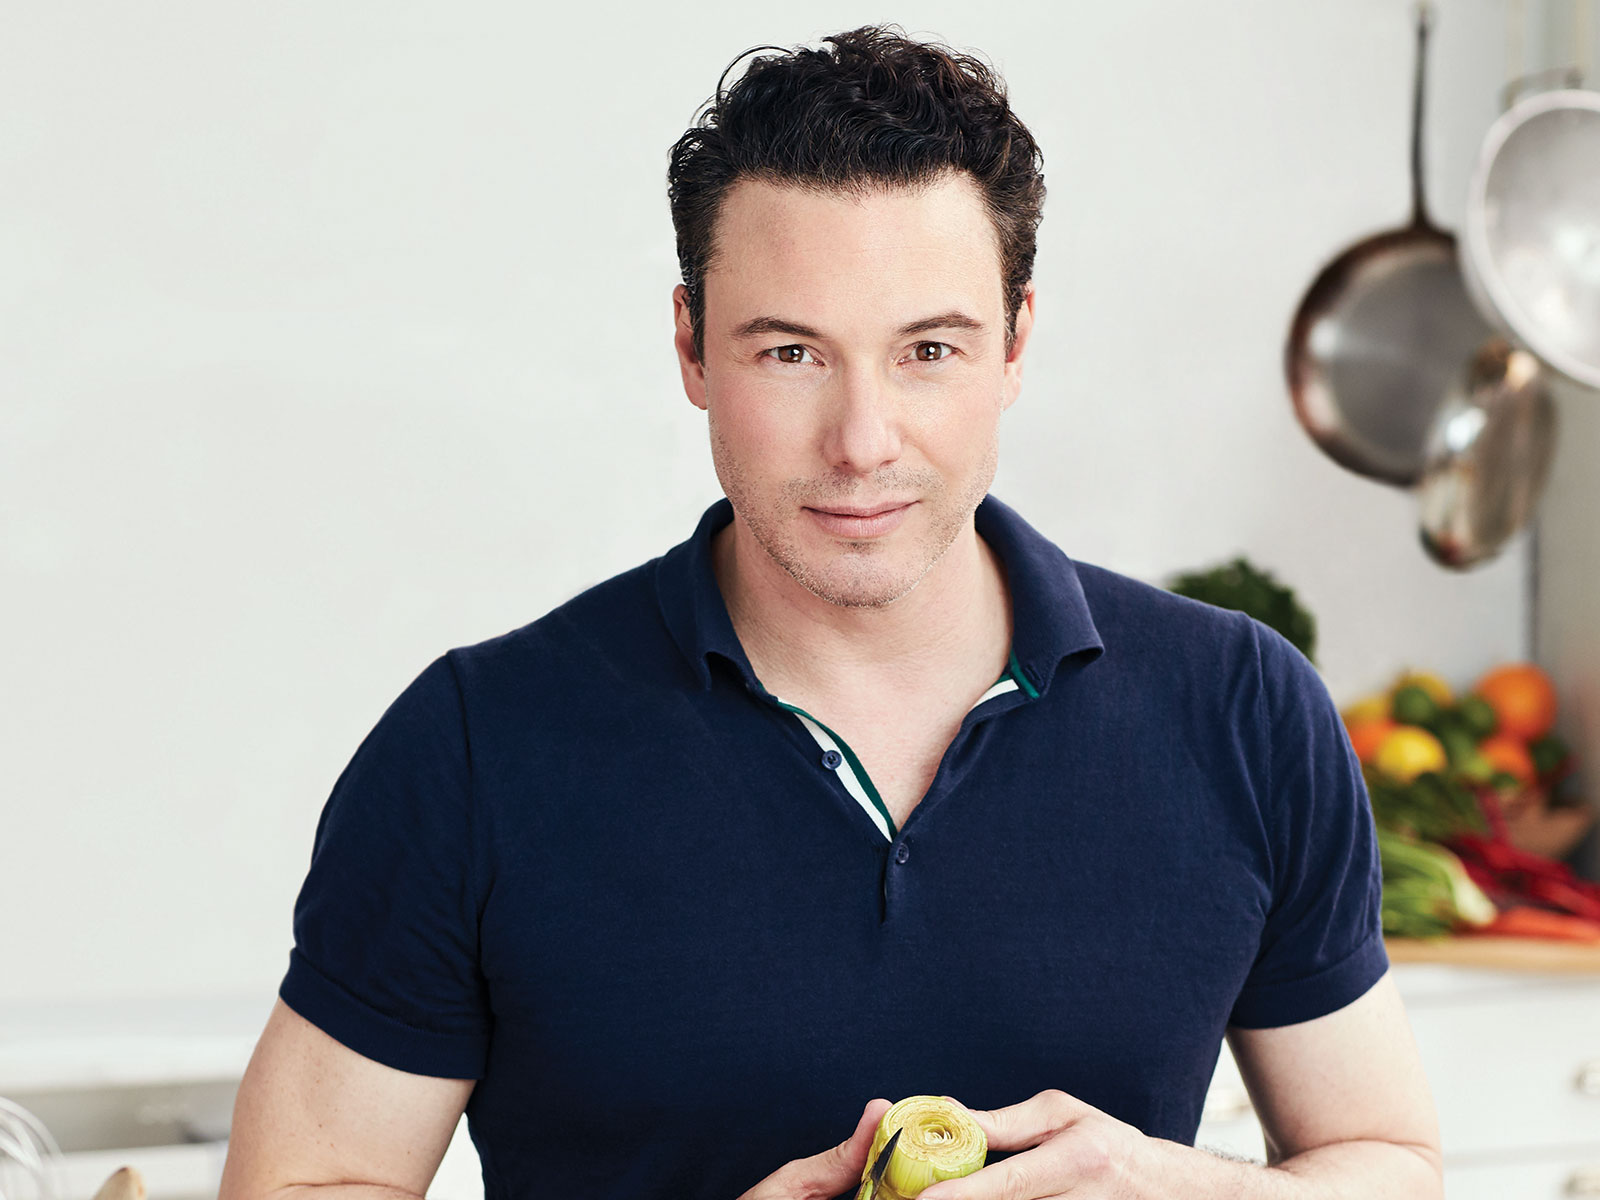 The Key to Making Perfect Risotto, According to Rocco DiSpirito